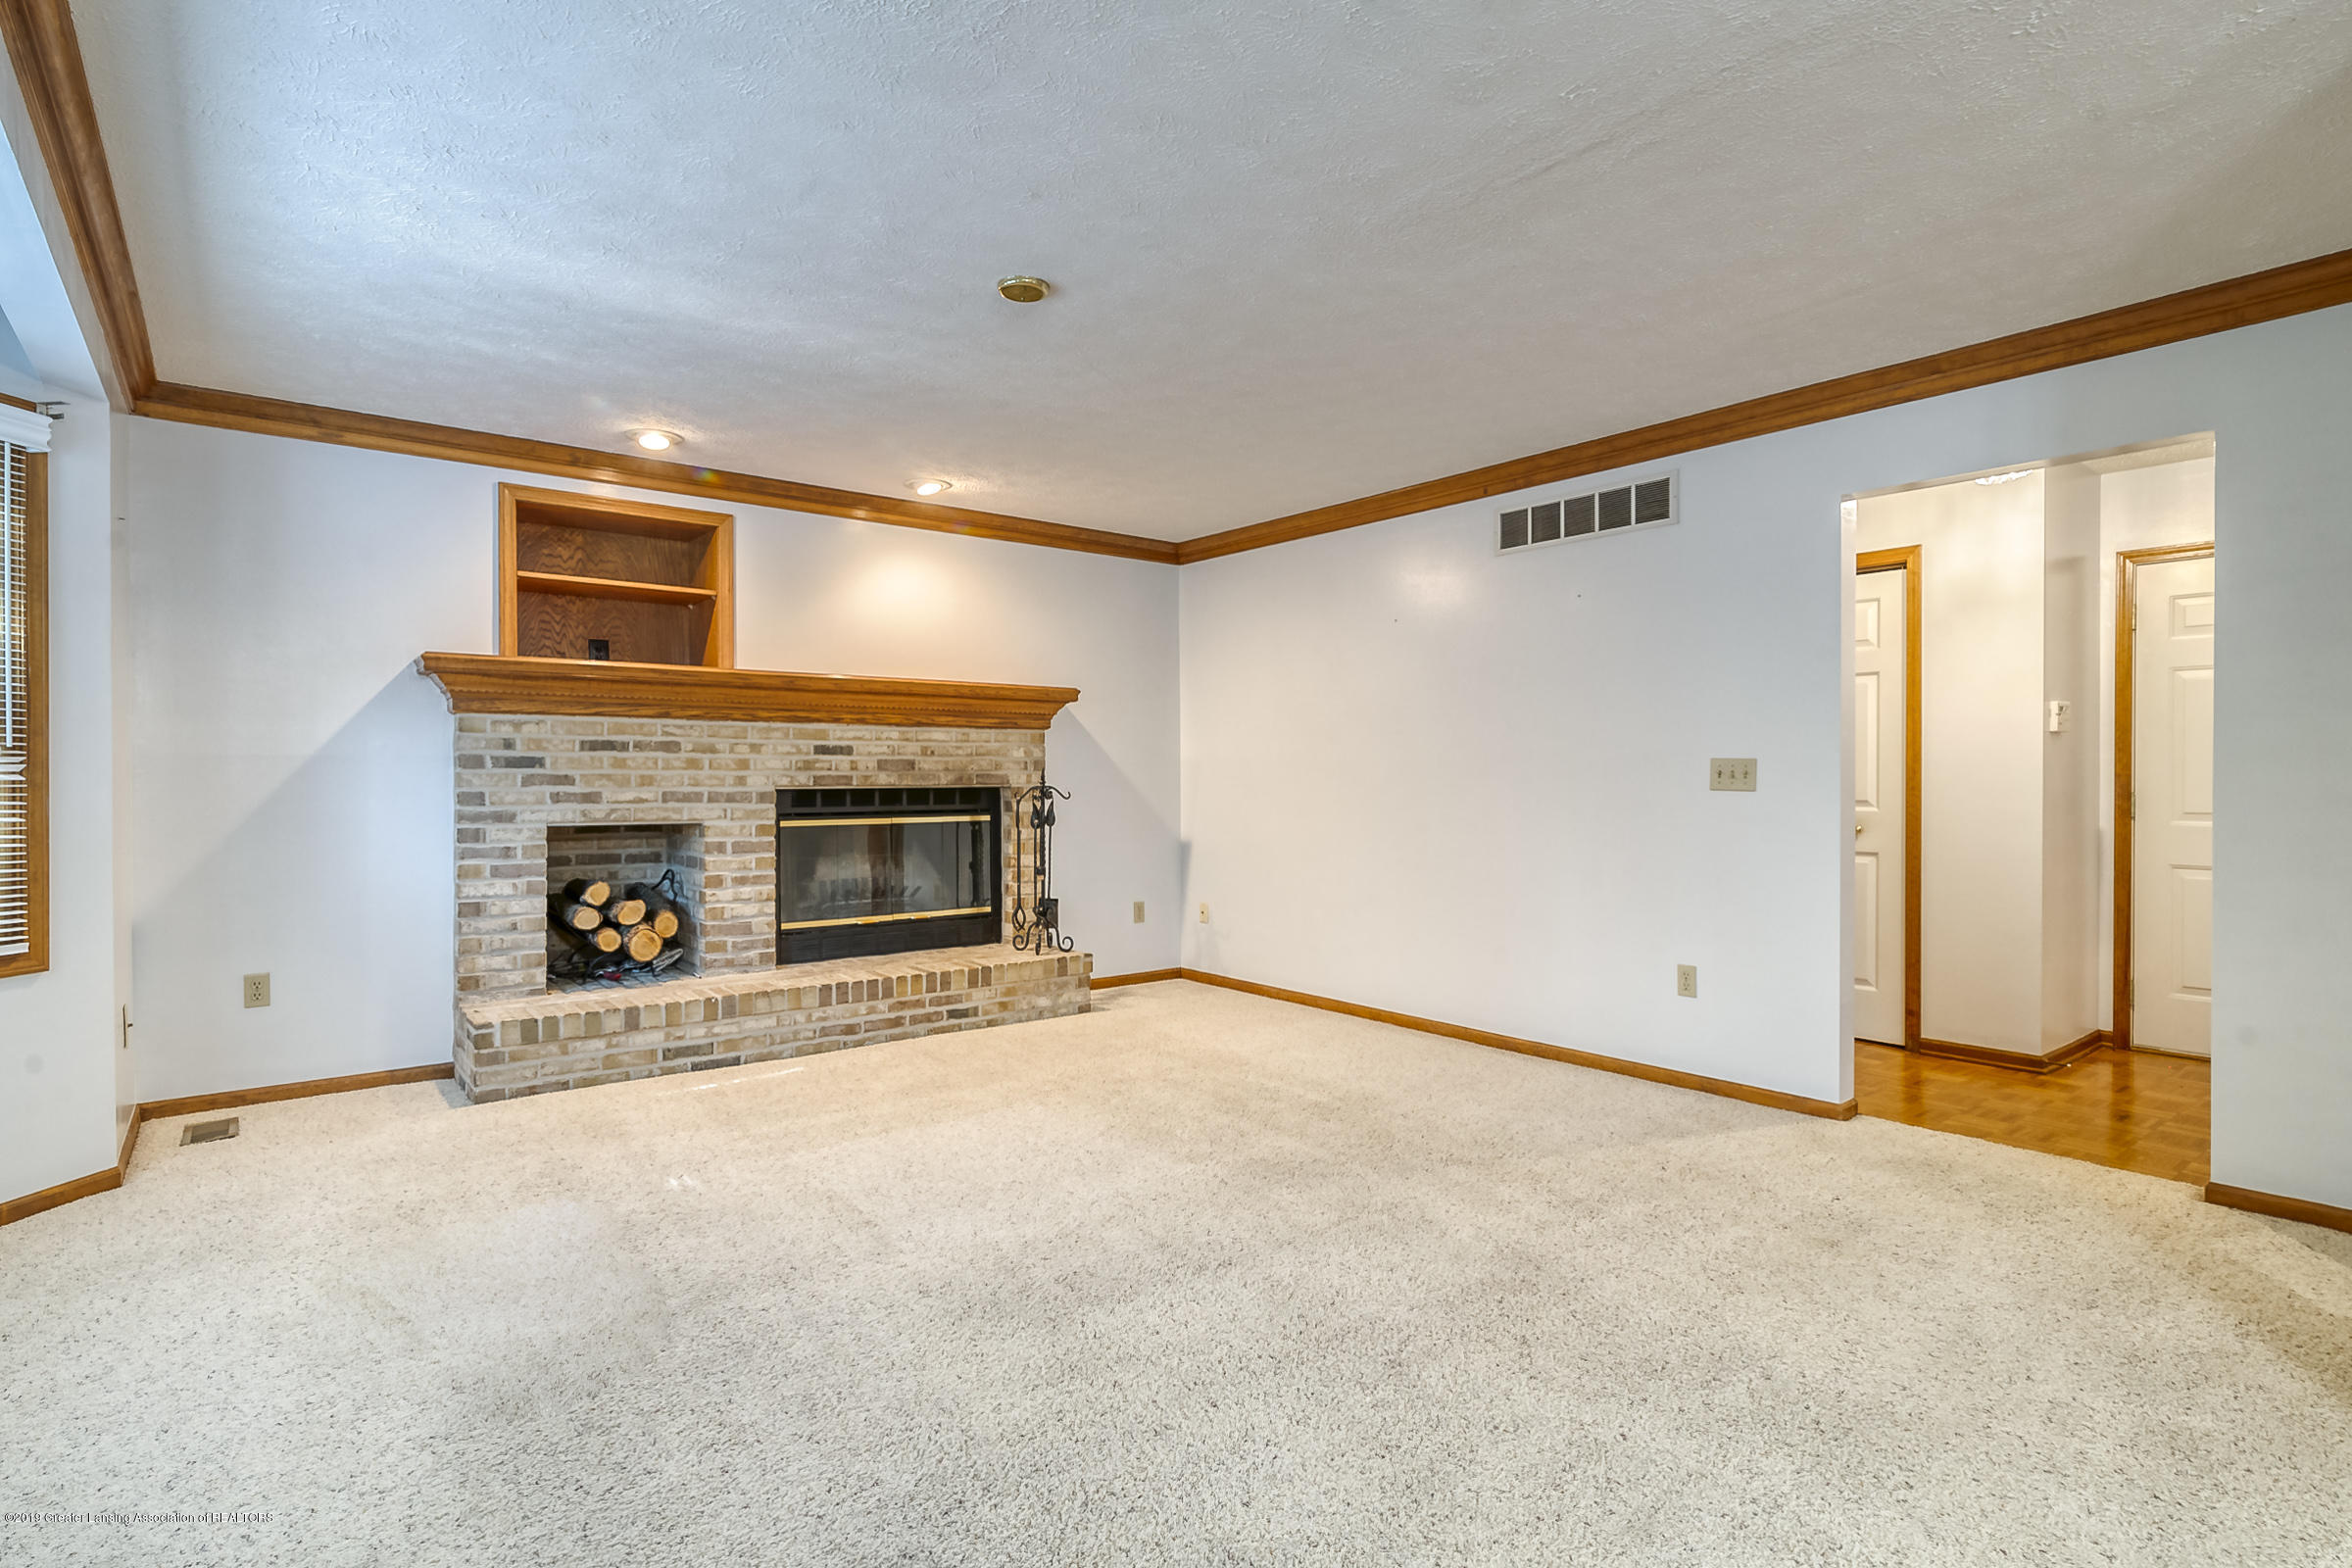 2343 Chisholm Ct - LIVING ROOM - 5